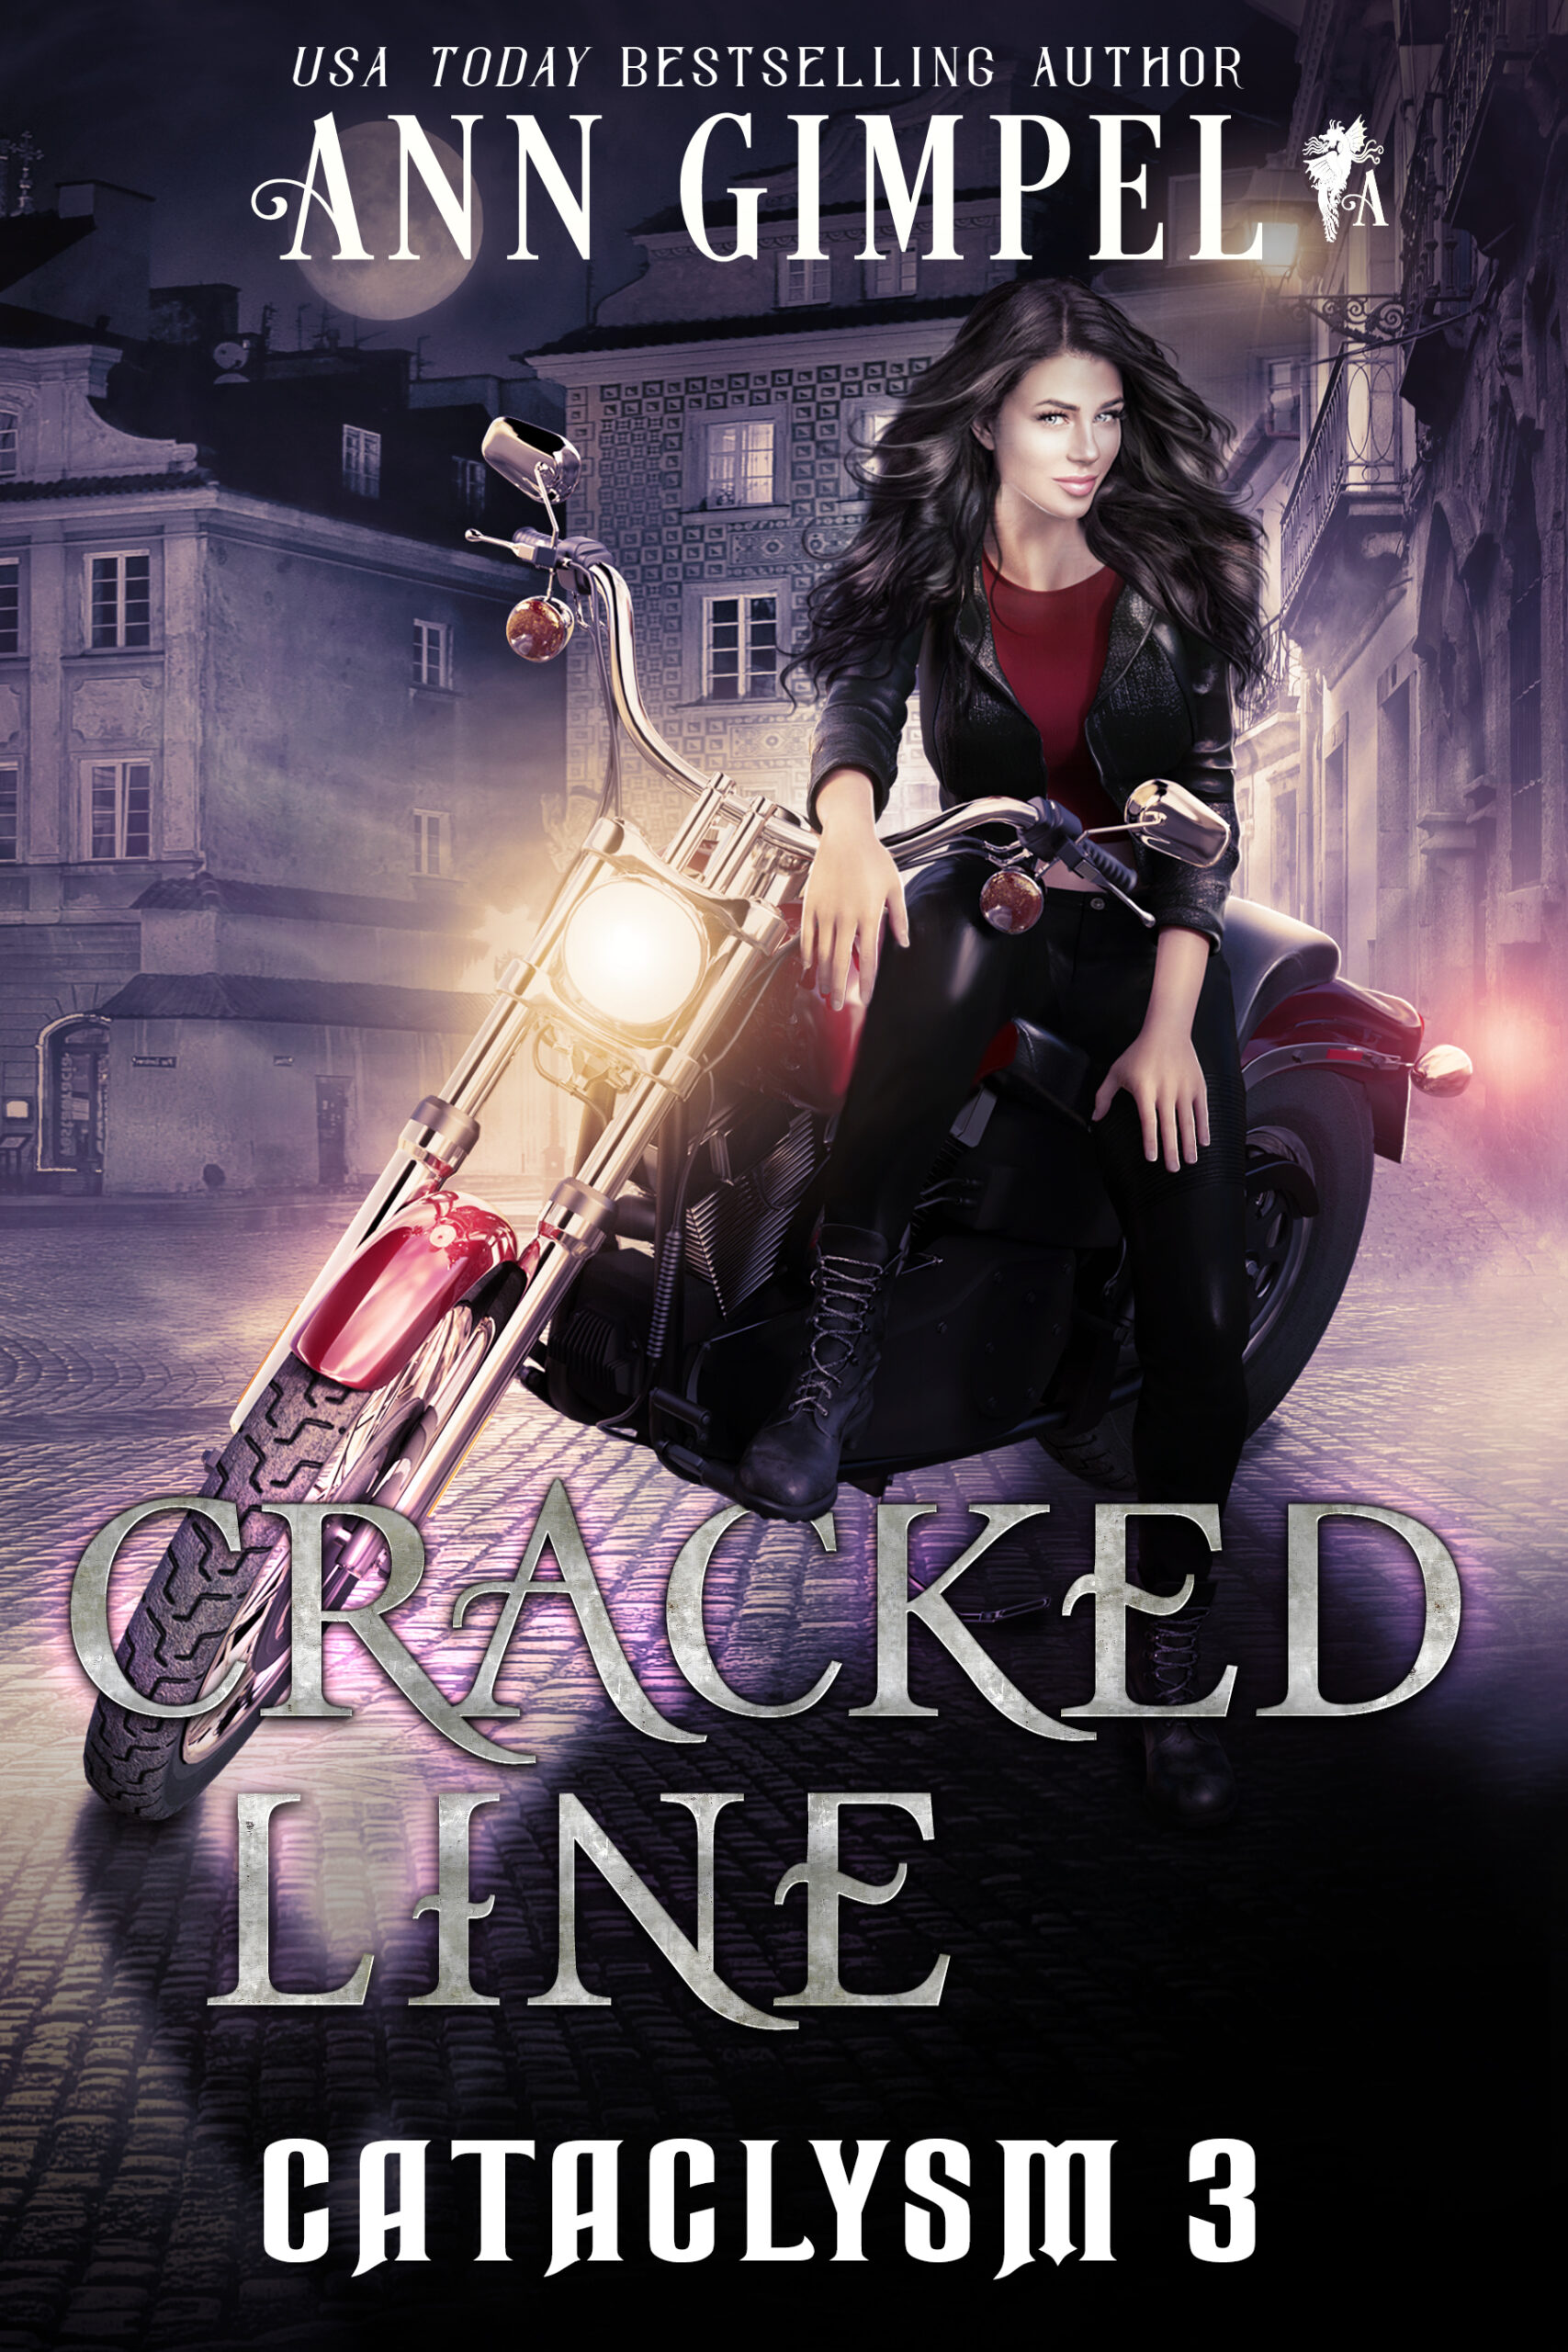 Cracked Line, Cataclysm Book Three